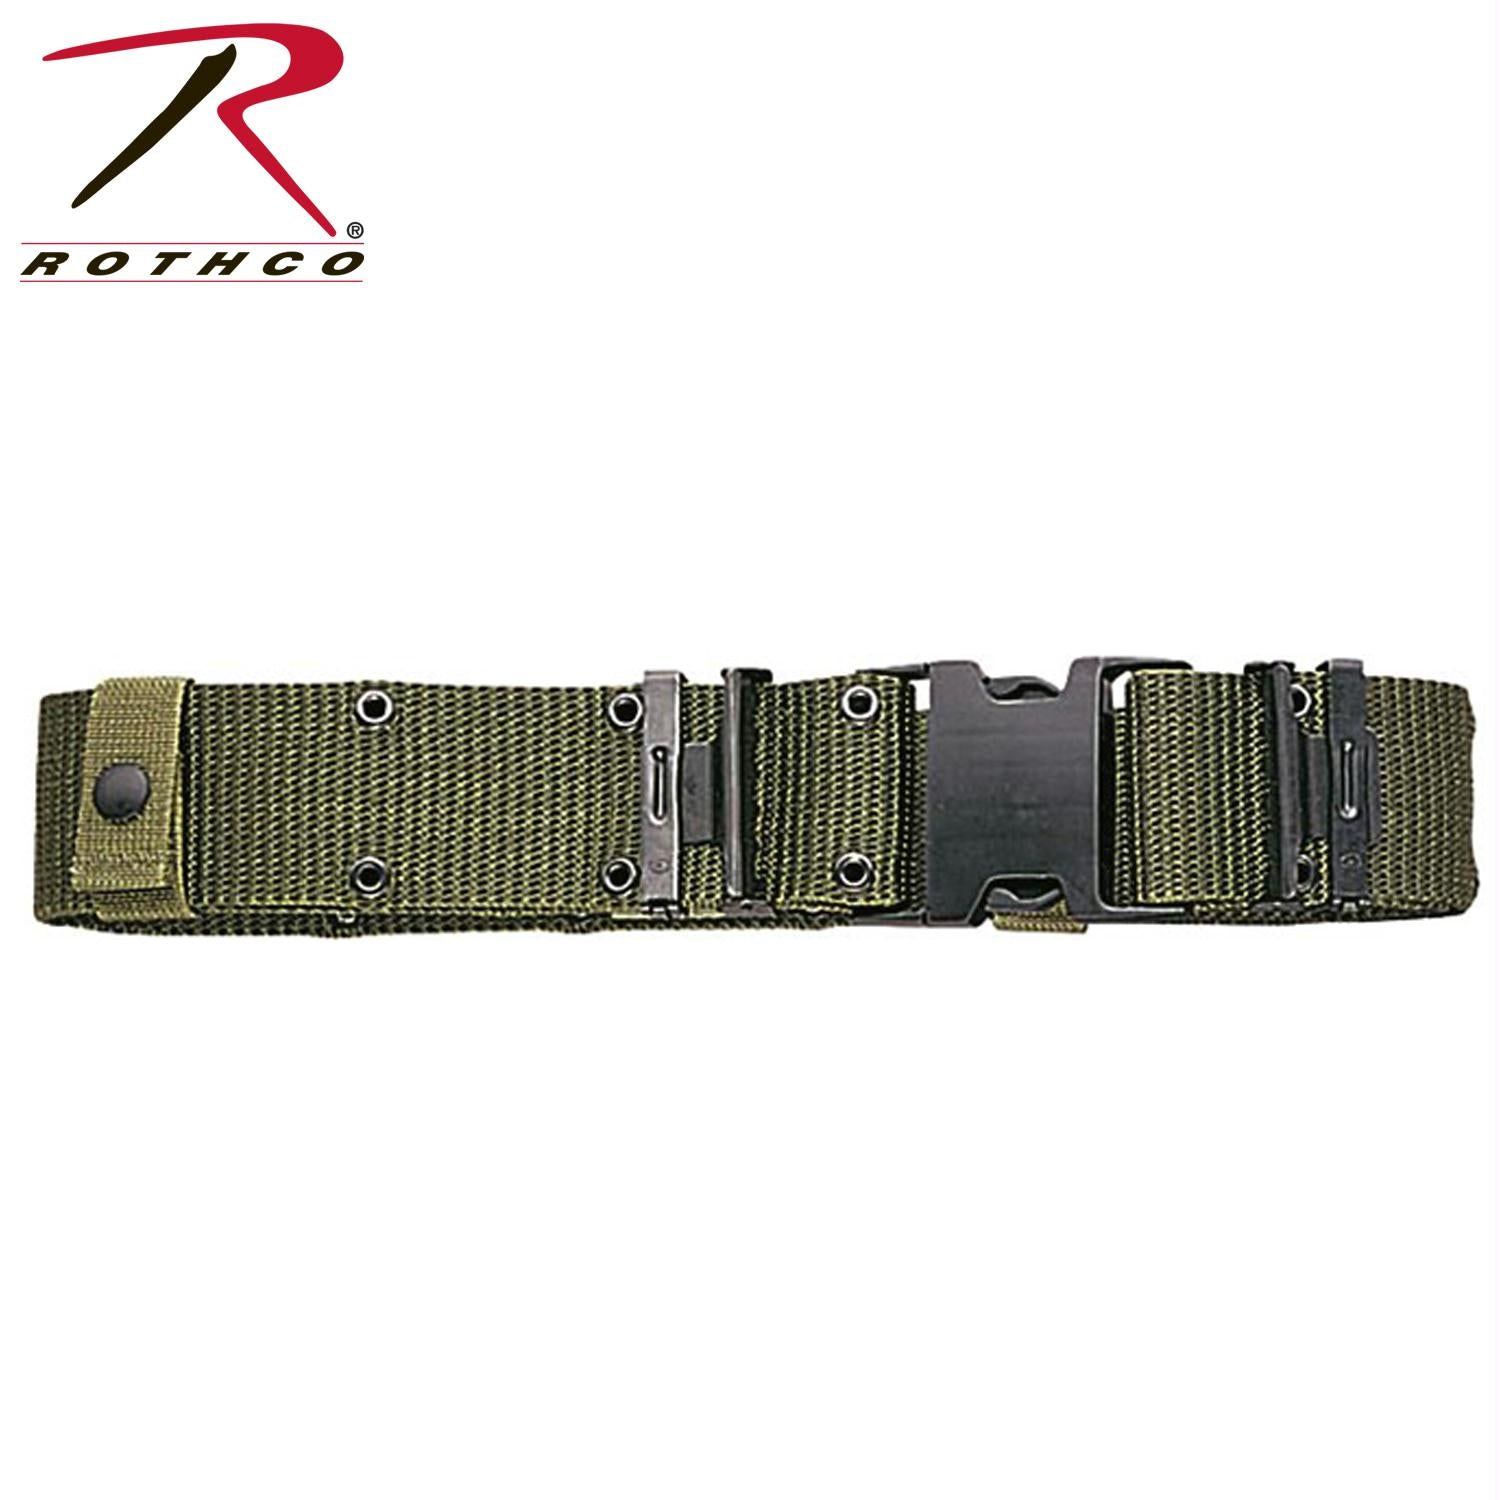 Rothco Genuine G.I. New Issue Quick Release Pistol Belt